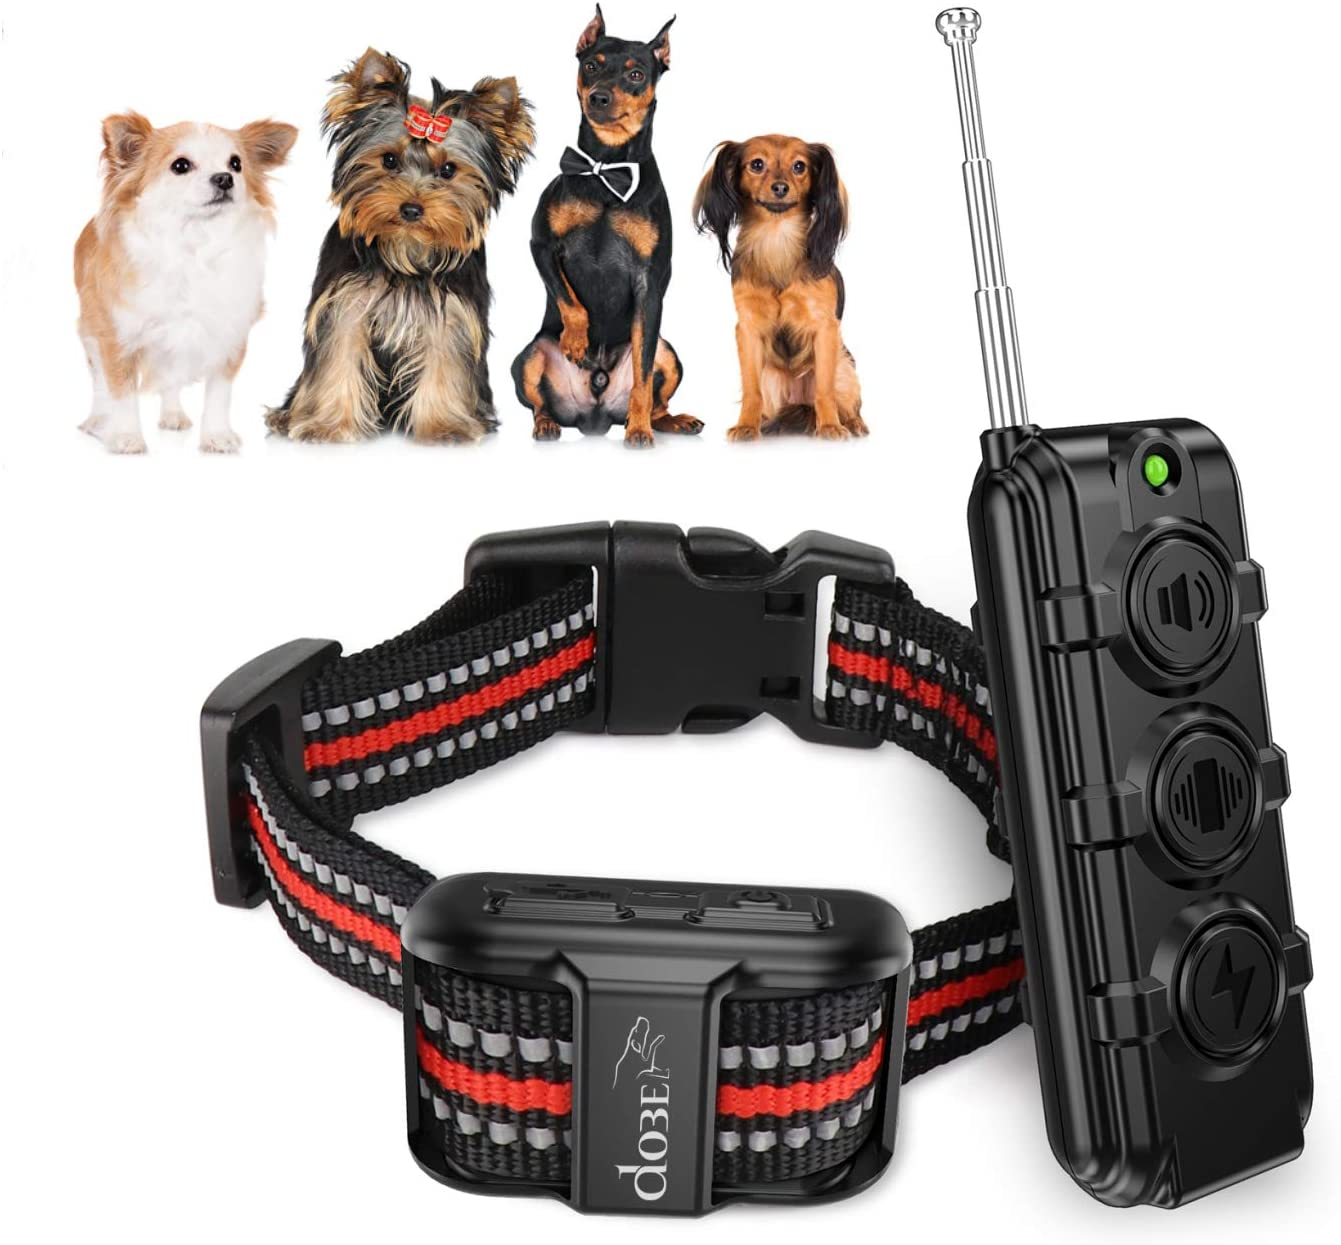 Dobe Dog Training Collar for Puppy Small Dog Waterproof Rechargeable Electric Dog Shock Collar with Remote with 3 Training Mode Beep, Vibration, Safe Shock for Small Medium Dogs